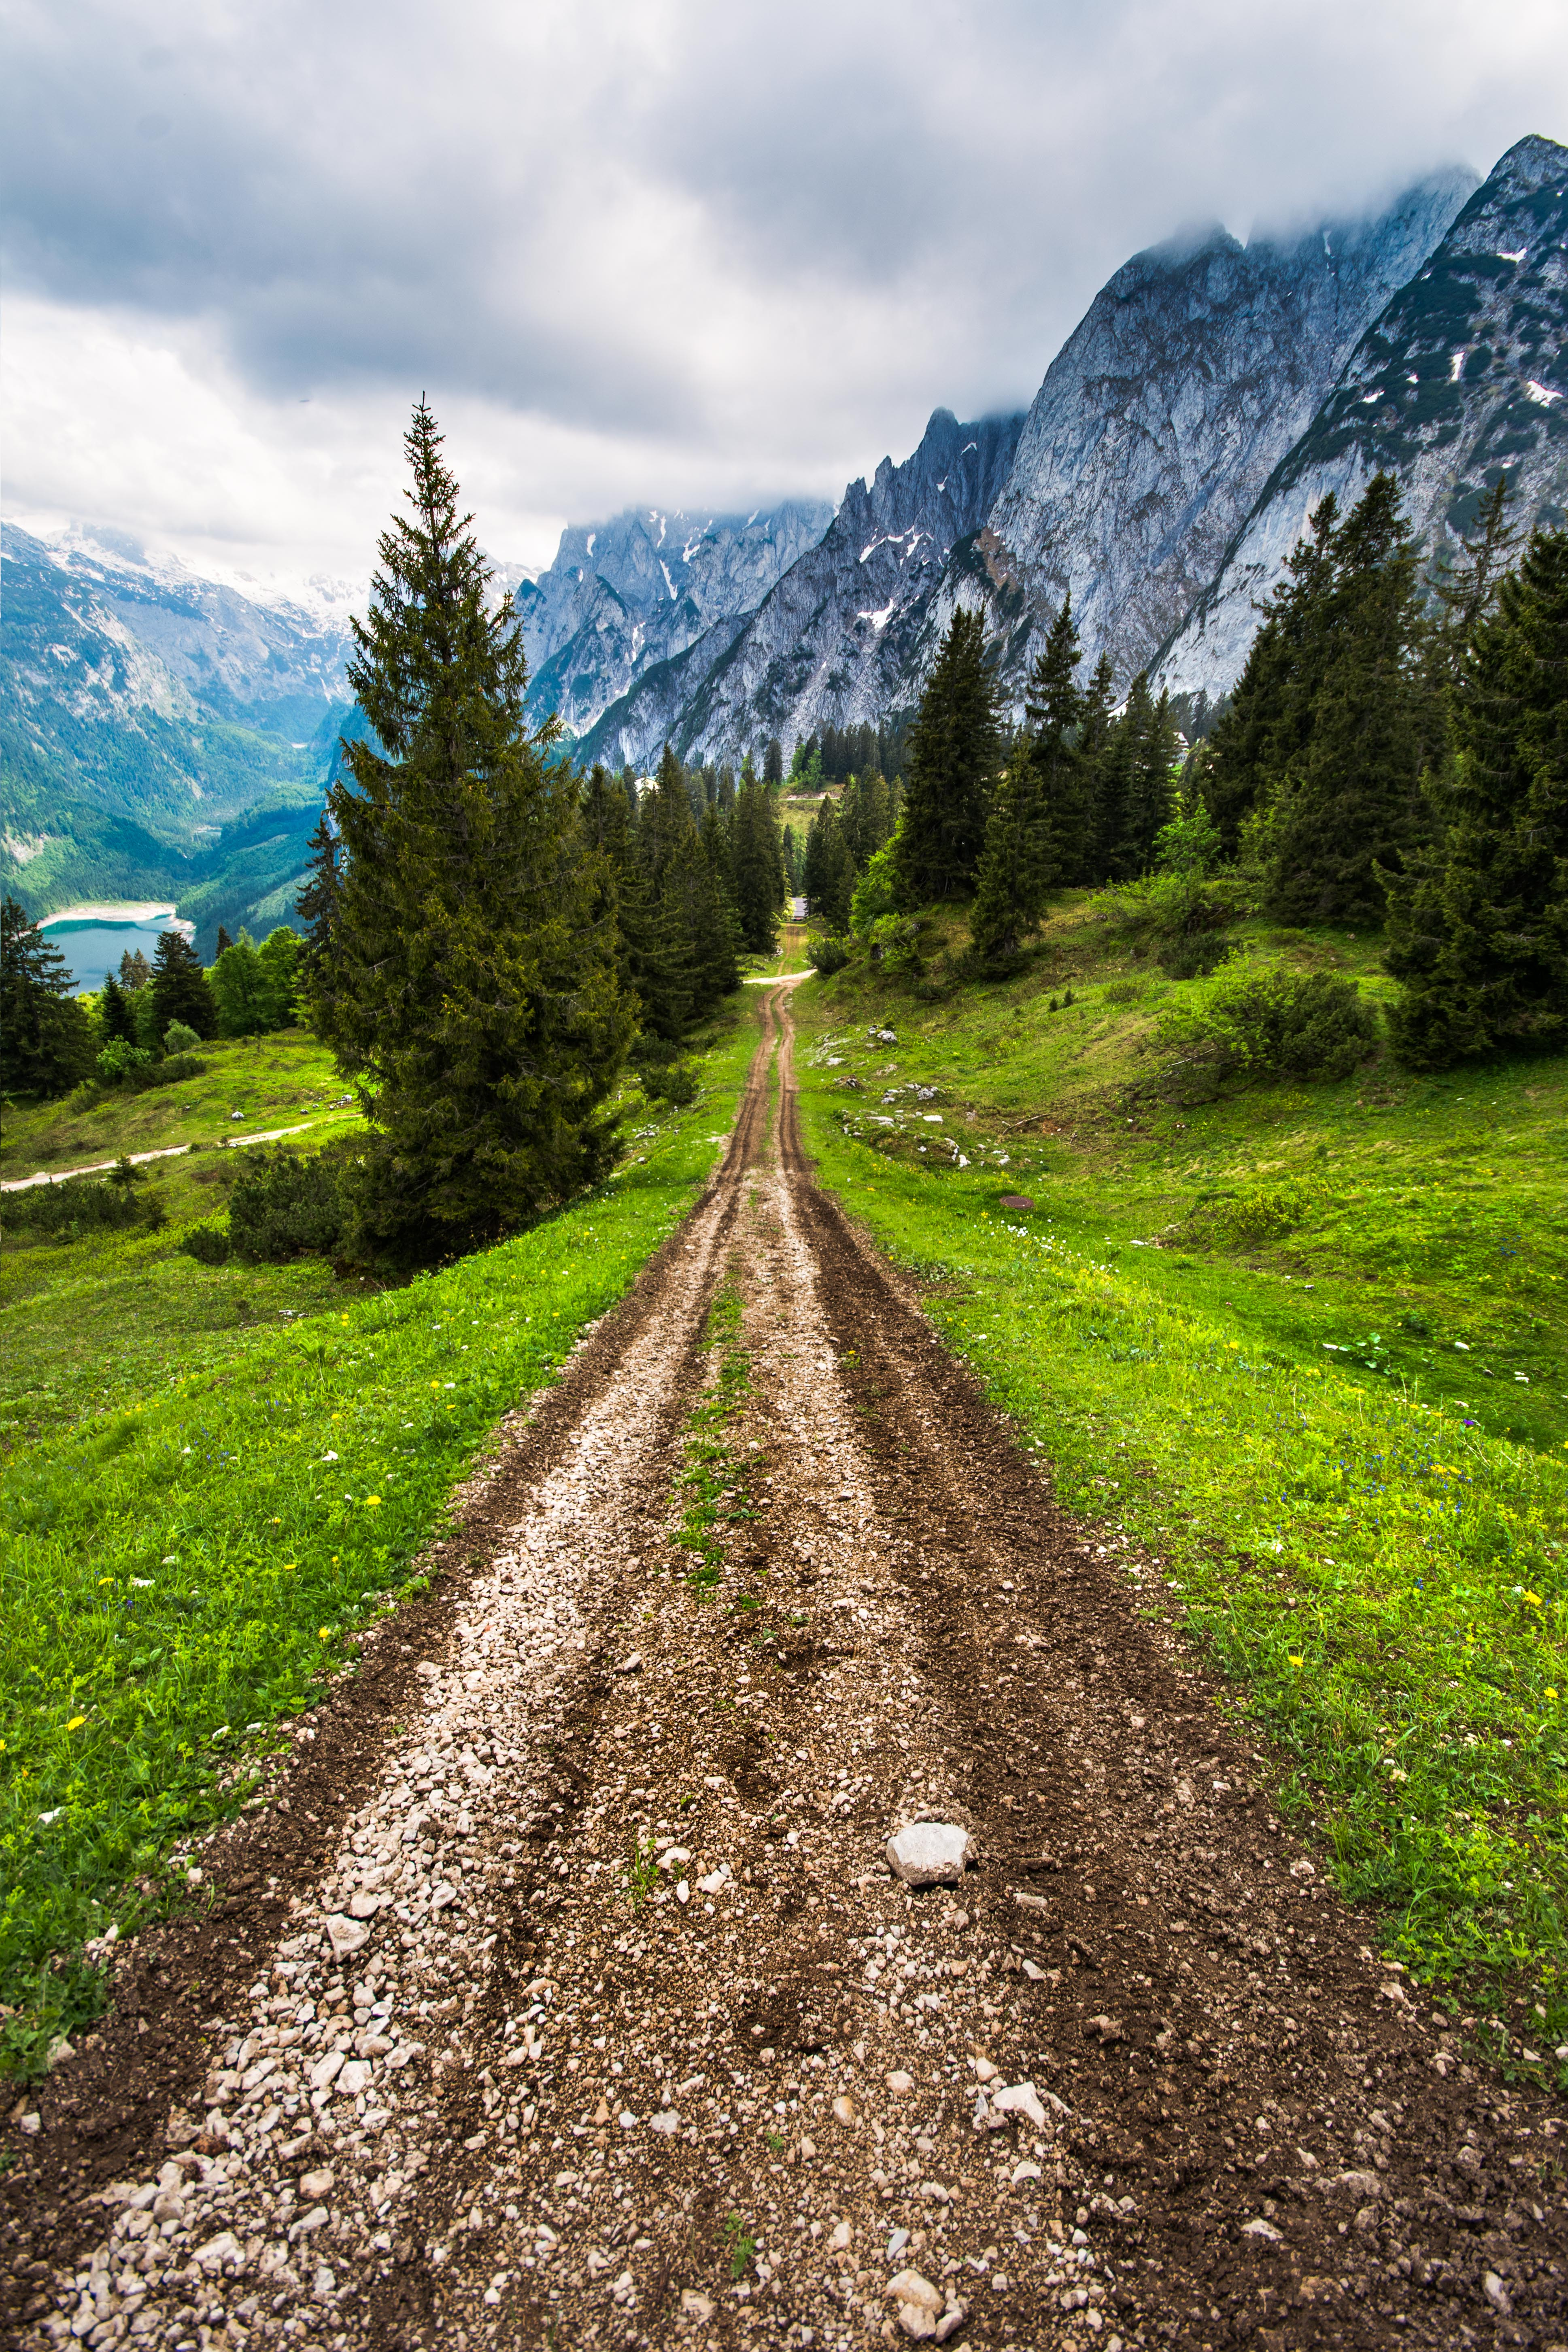 One road that leads to no where in the woods. I remember we were just running on this mud road with Gopro on. It was super fun in Gosua Dachstein Austria which made our couple summer holidays rememberable : TravelAnubhav ( Travel Anubhav).